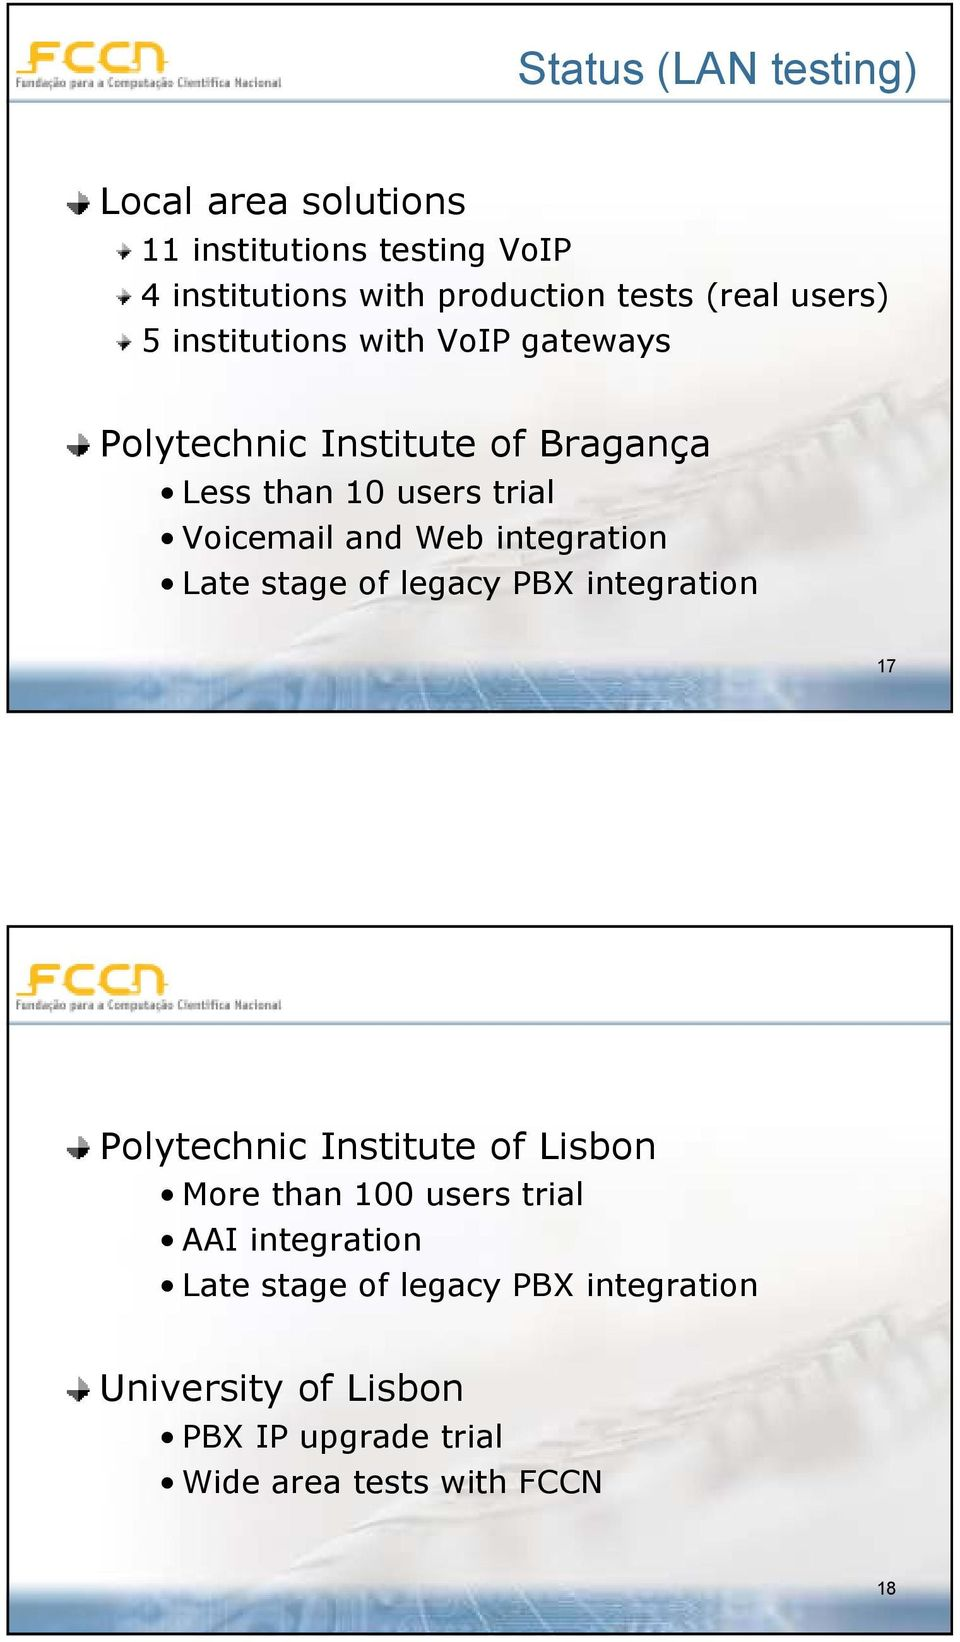 Web integration Late stage of legacy PBX integration 17 Polytechnic Institute of Lisbon More than 100 users trial